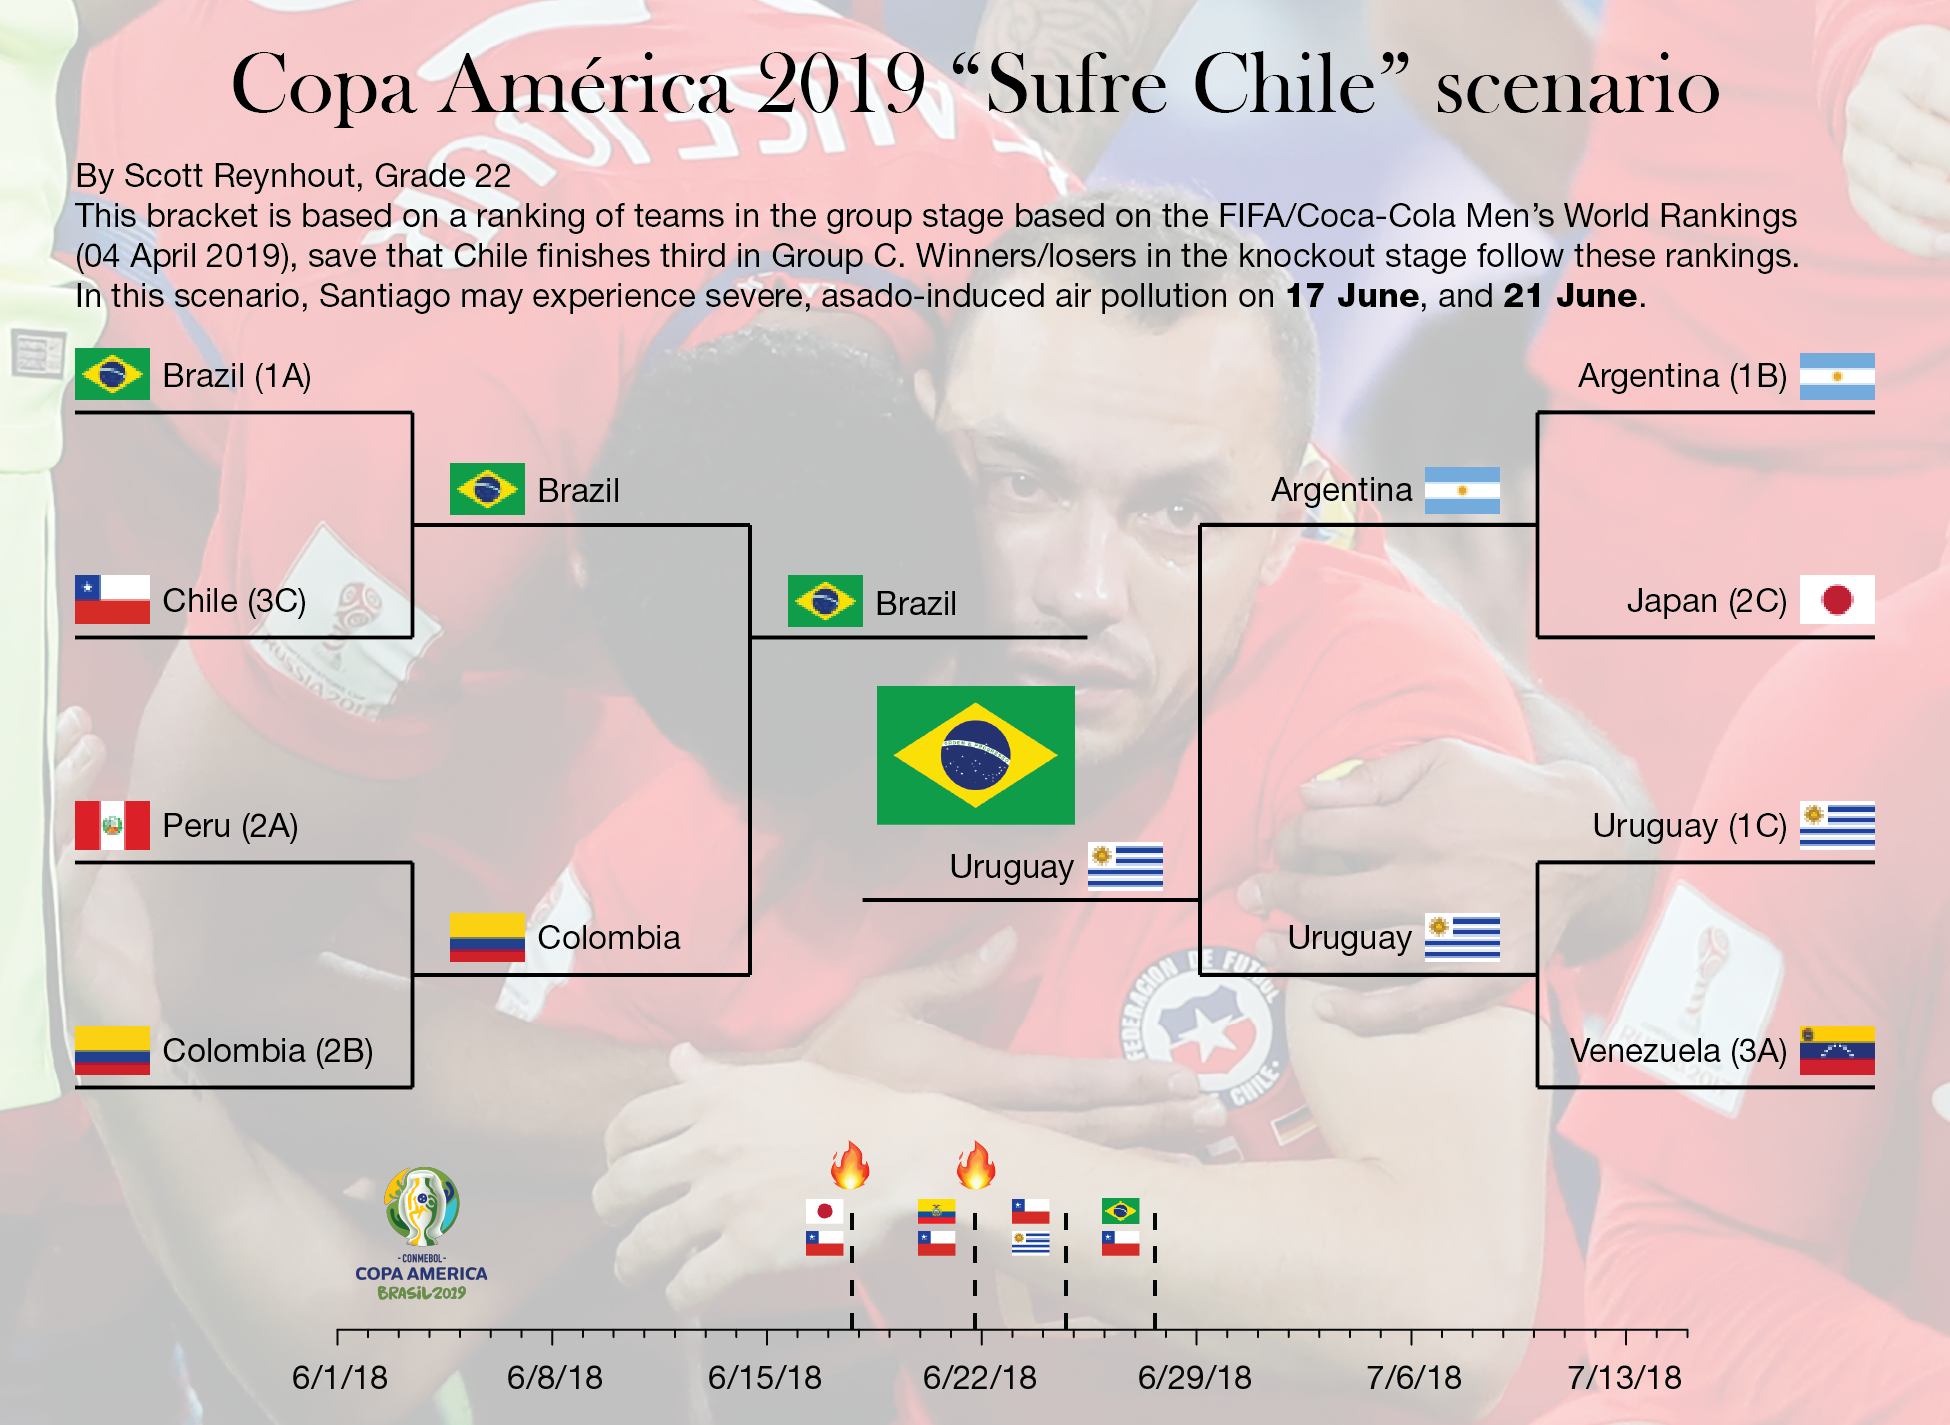 Knockout Sufre Chile-01.png